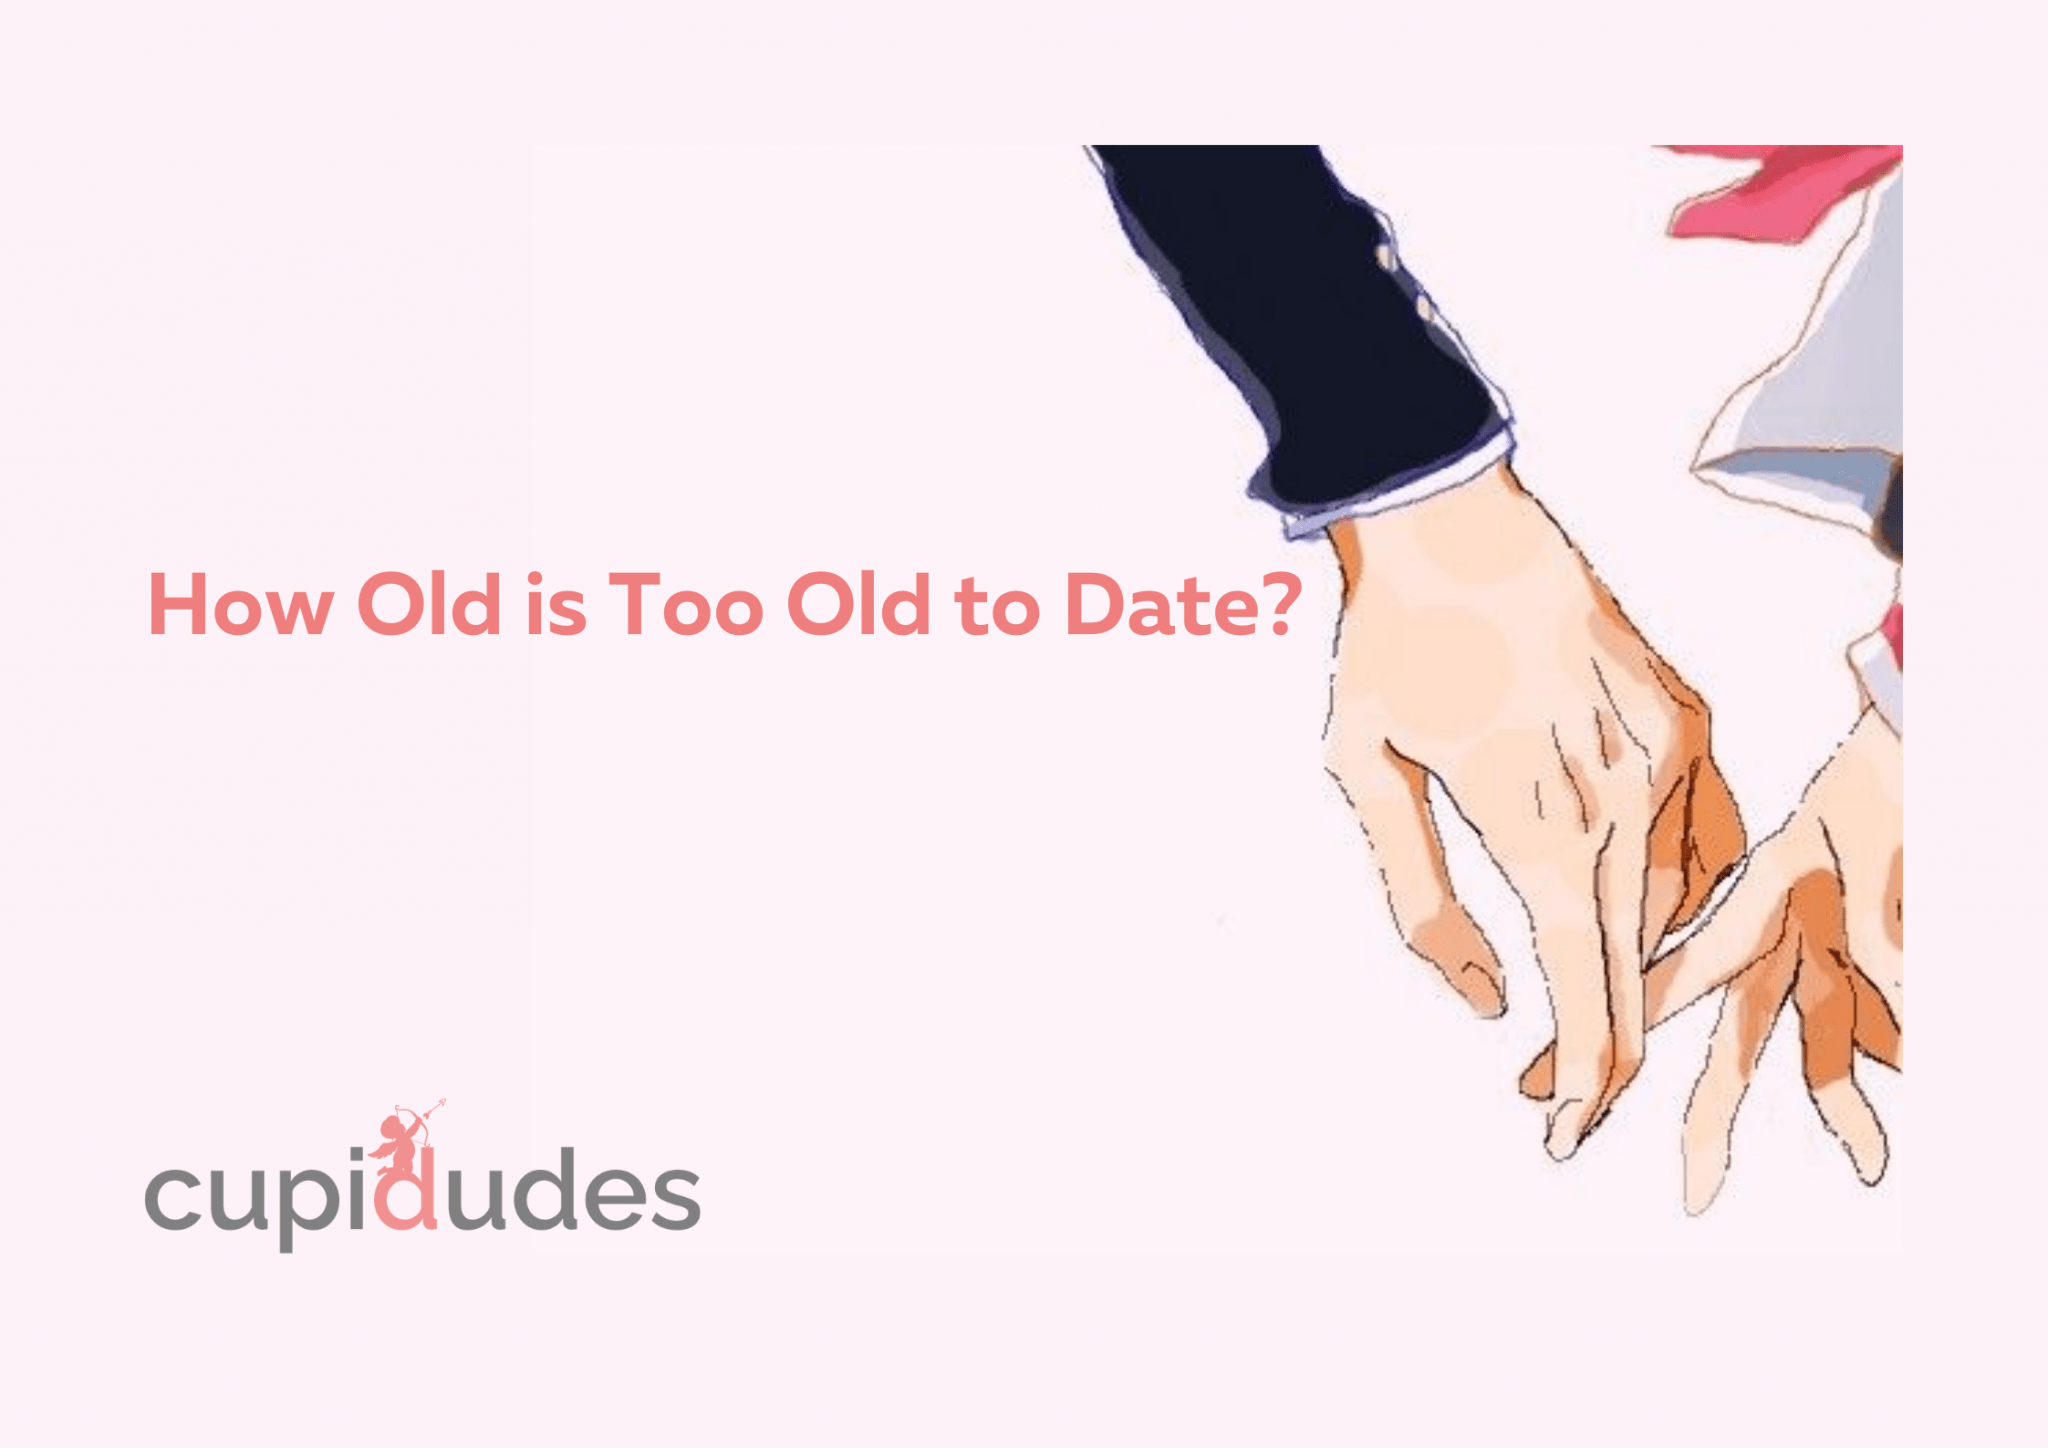 How Old is Too Old to Date